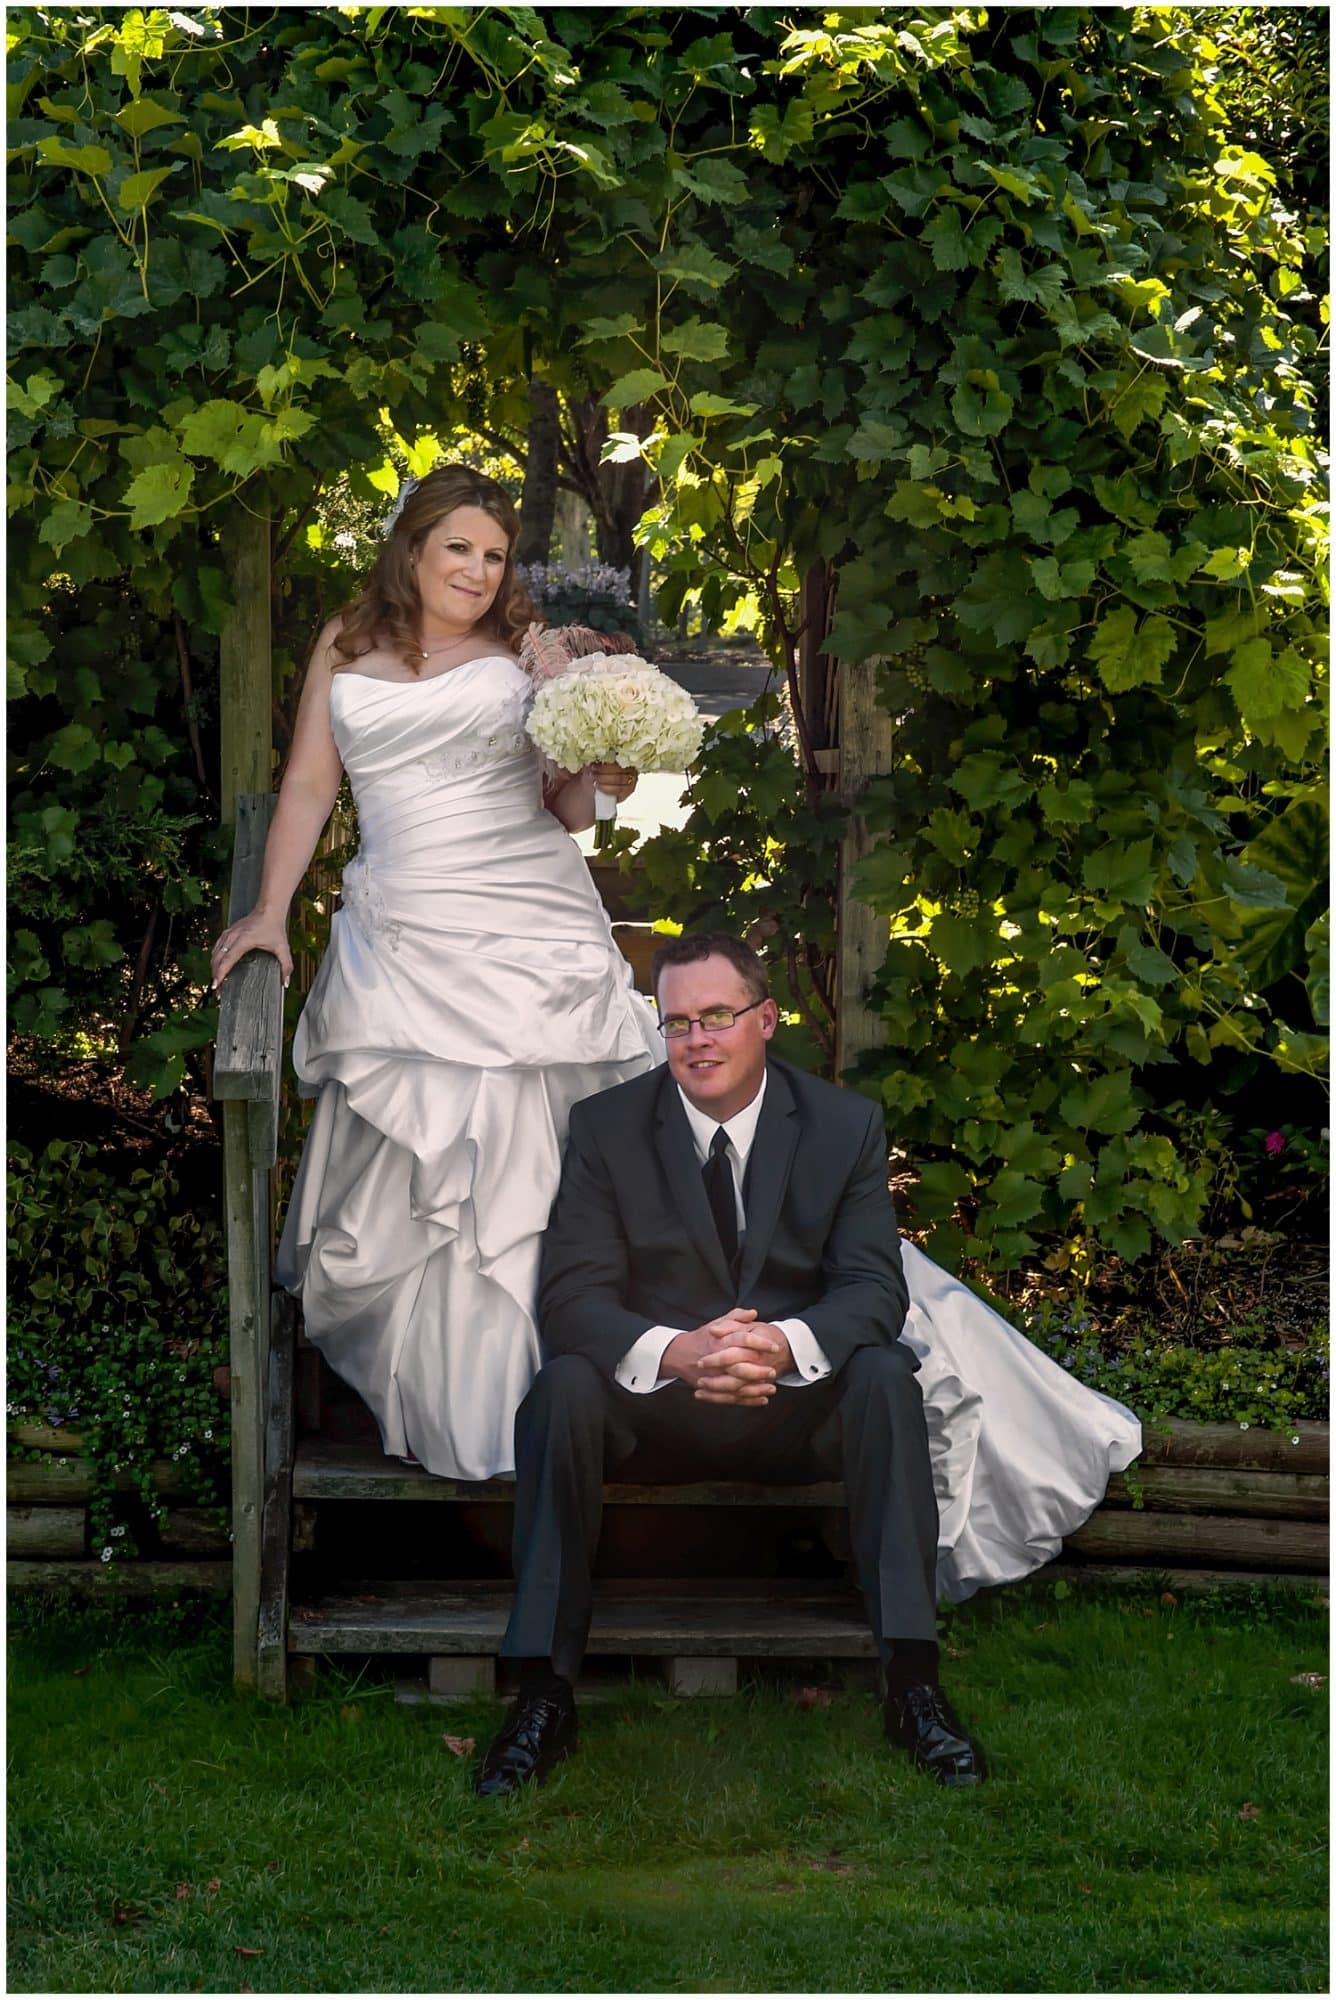 The bride and groom pose for wedding photos during their wedding at the Ashburn Golf Club in Halifax Nova Scotia.